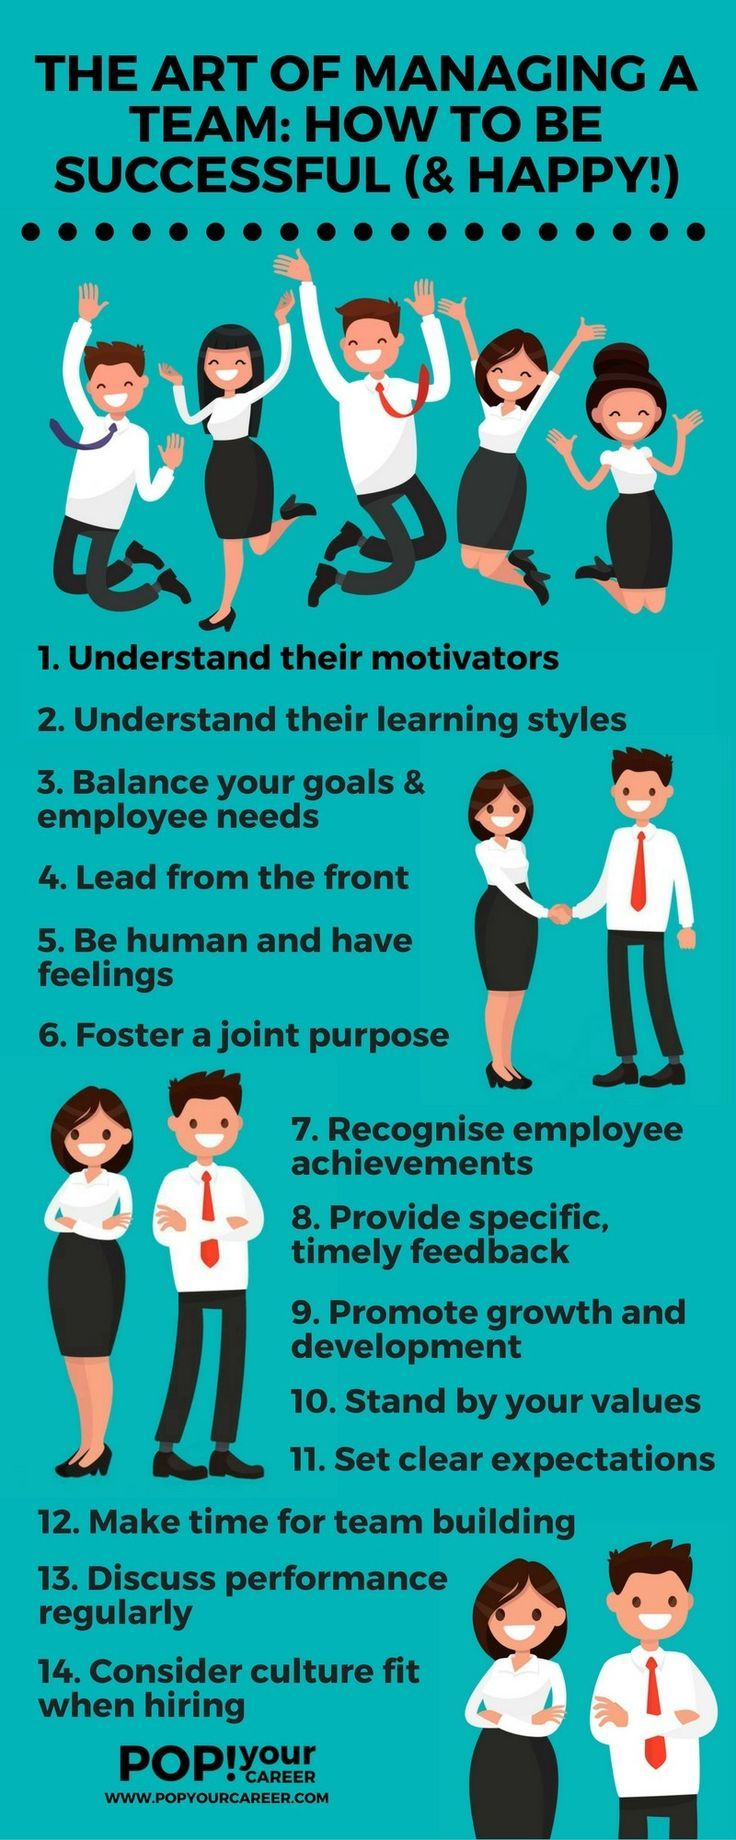 The Art of Managing a Team